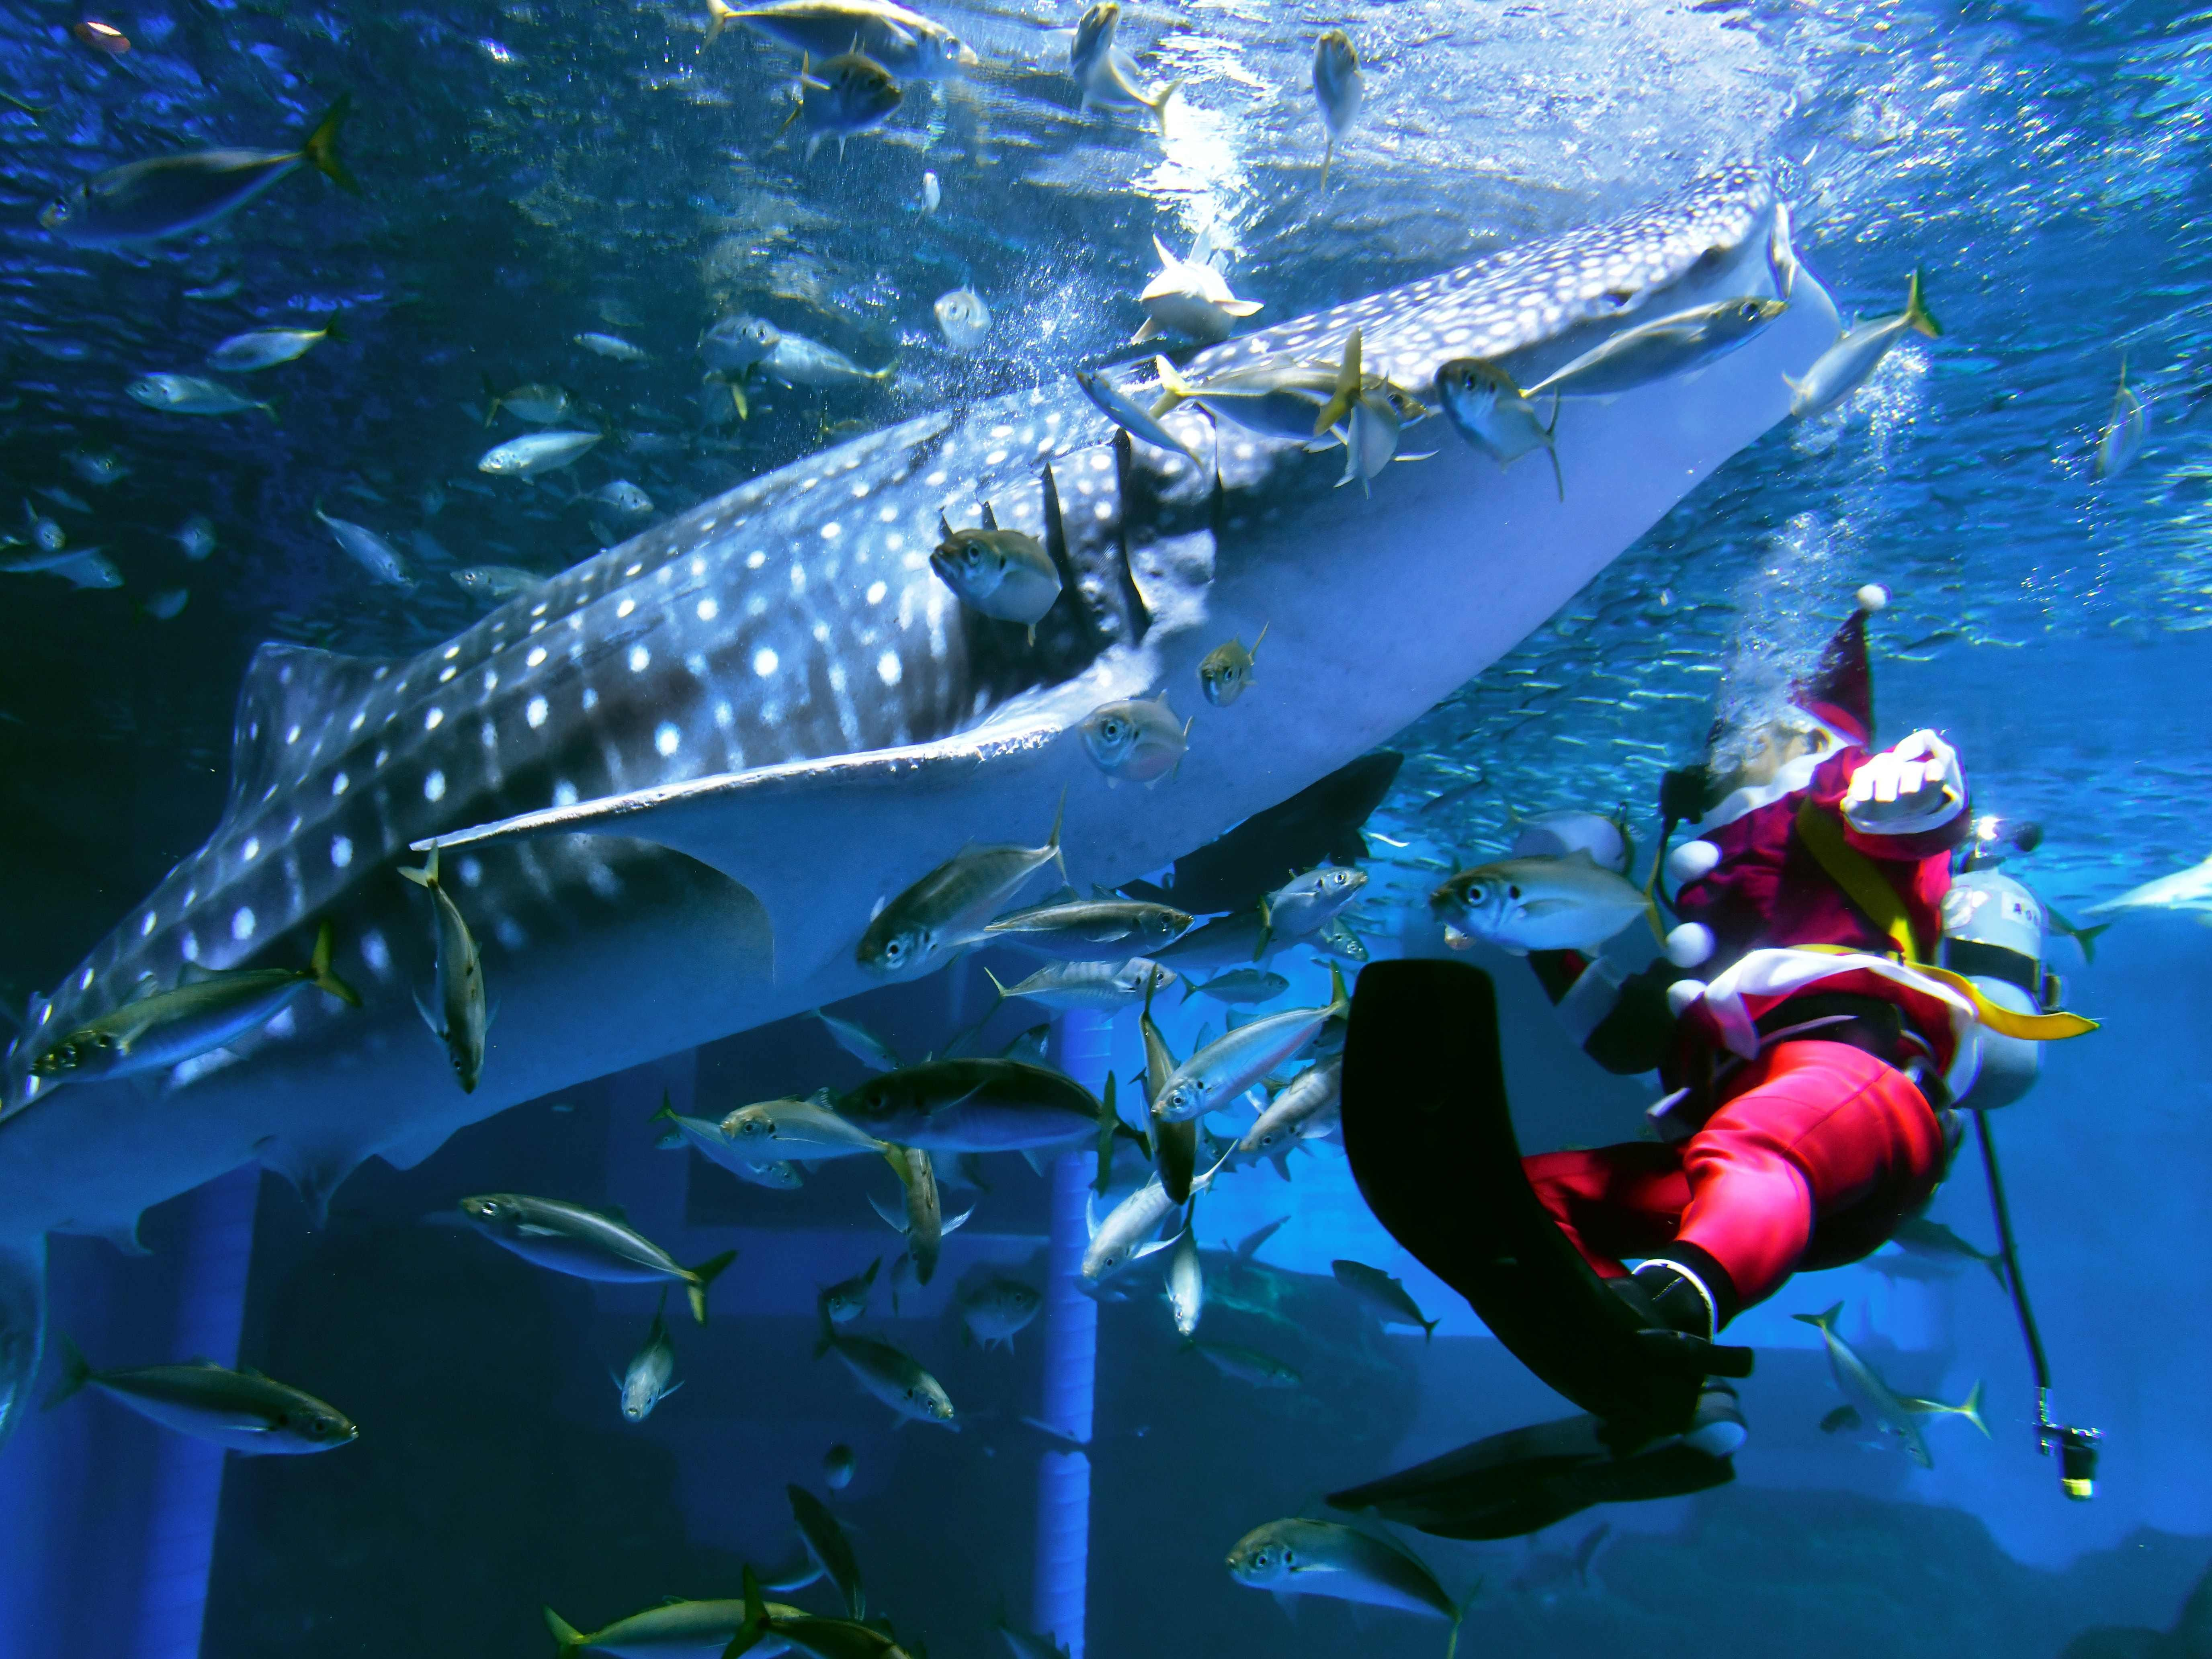 A diver dressed as Santa Claus swims with fish and a whale shark in an aquarium at the Yokohama Hakkeijima Sea Paradise in Yokohama on December 24, 2018, during a promotional Christmas show. (Photo by Kazuhiro NOGI / AFP)KAZUHIRO NOGI/AFP/Getty Images ORIG FILE ID: AFP_1BT33B